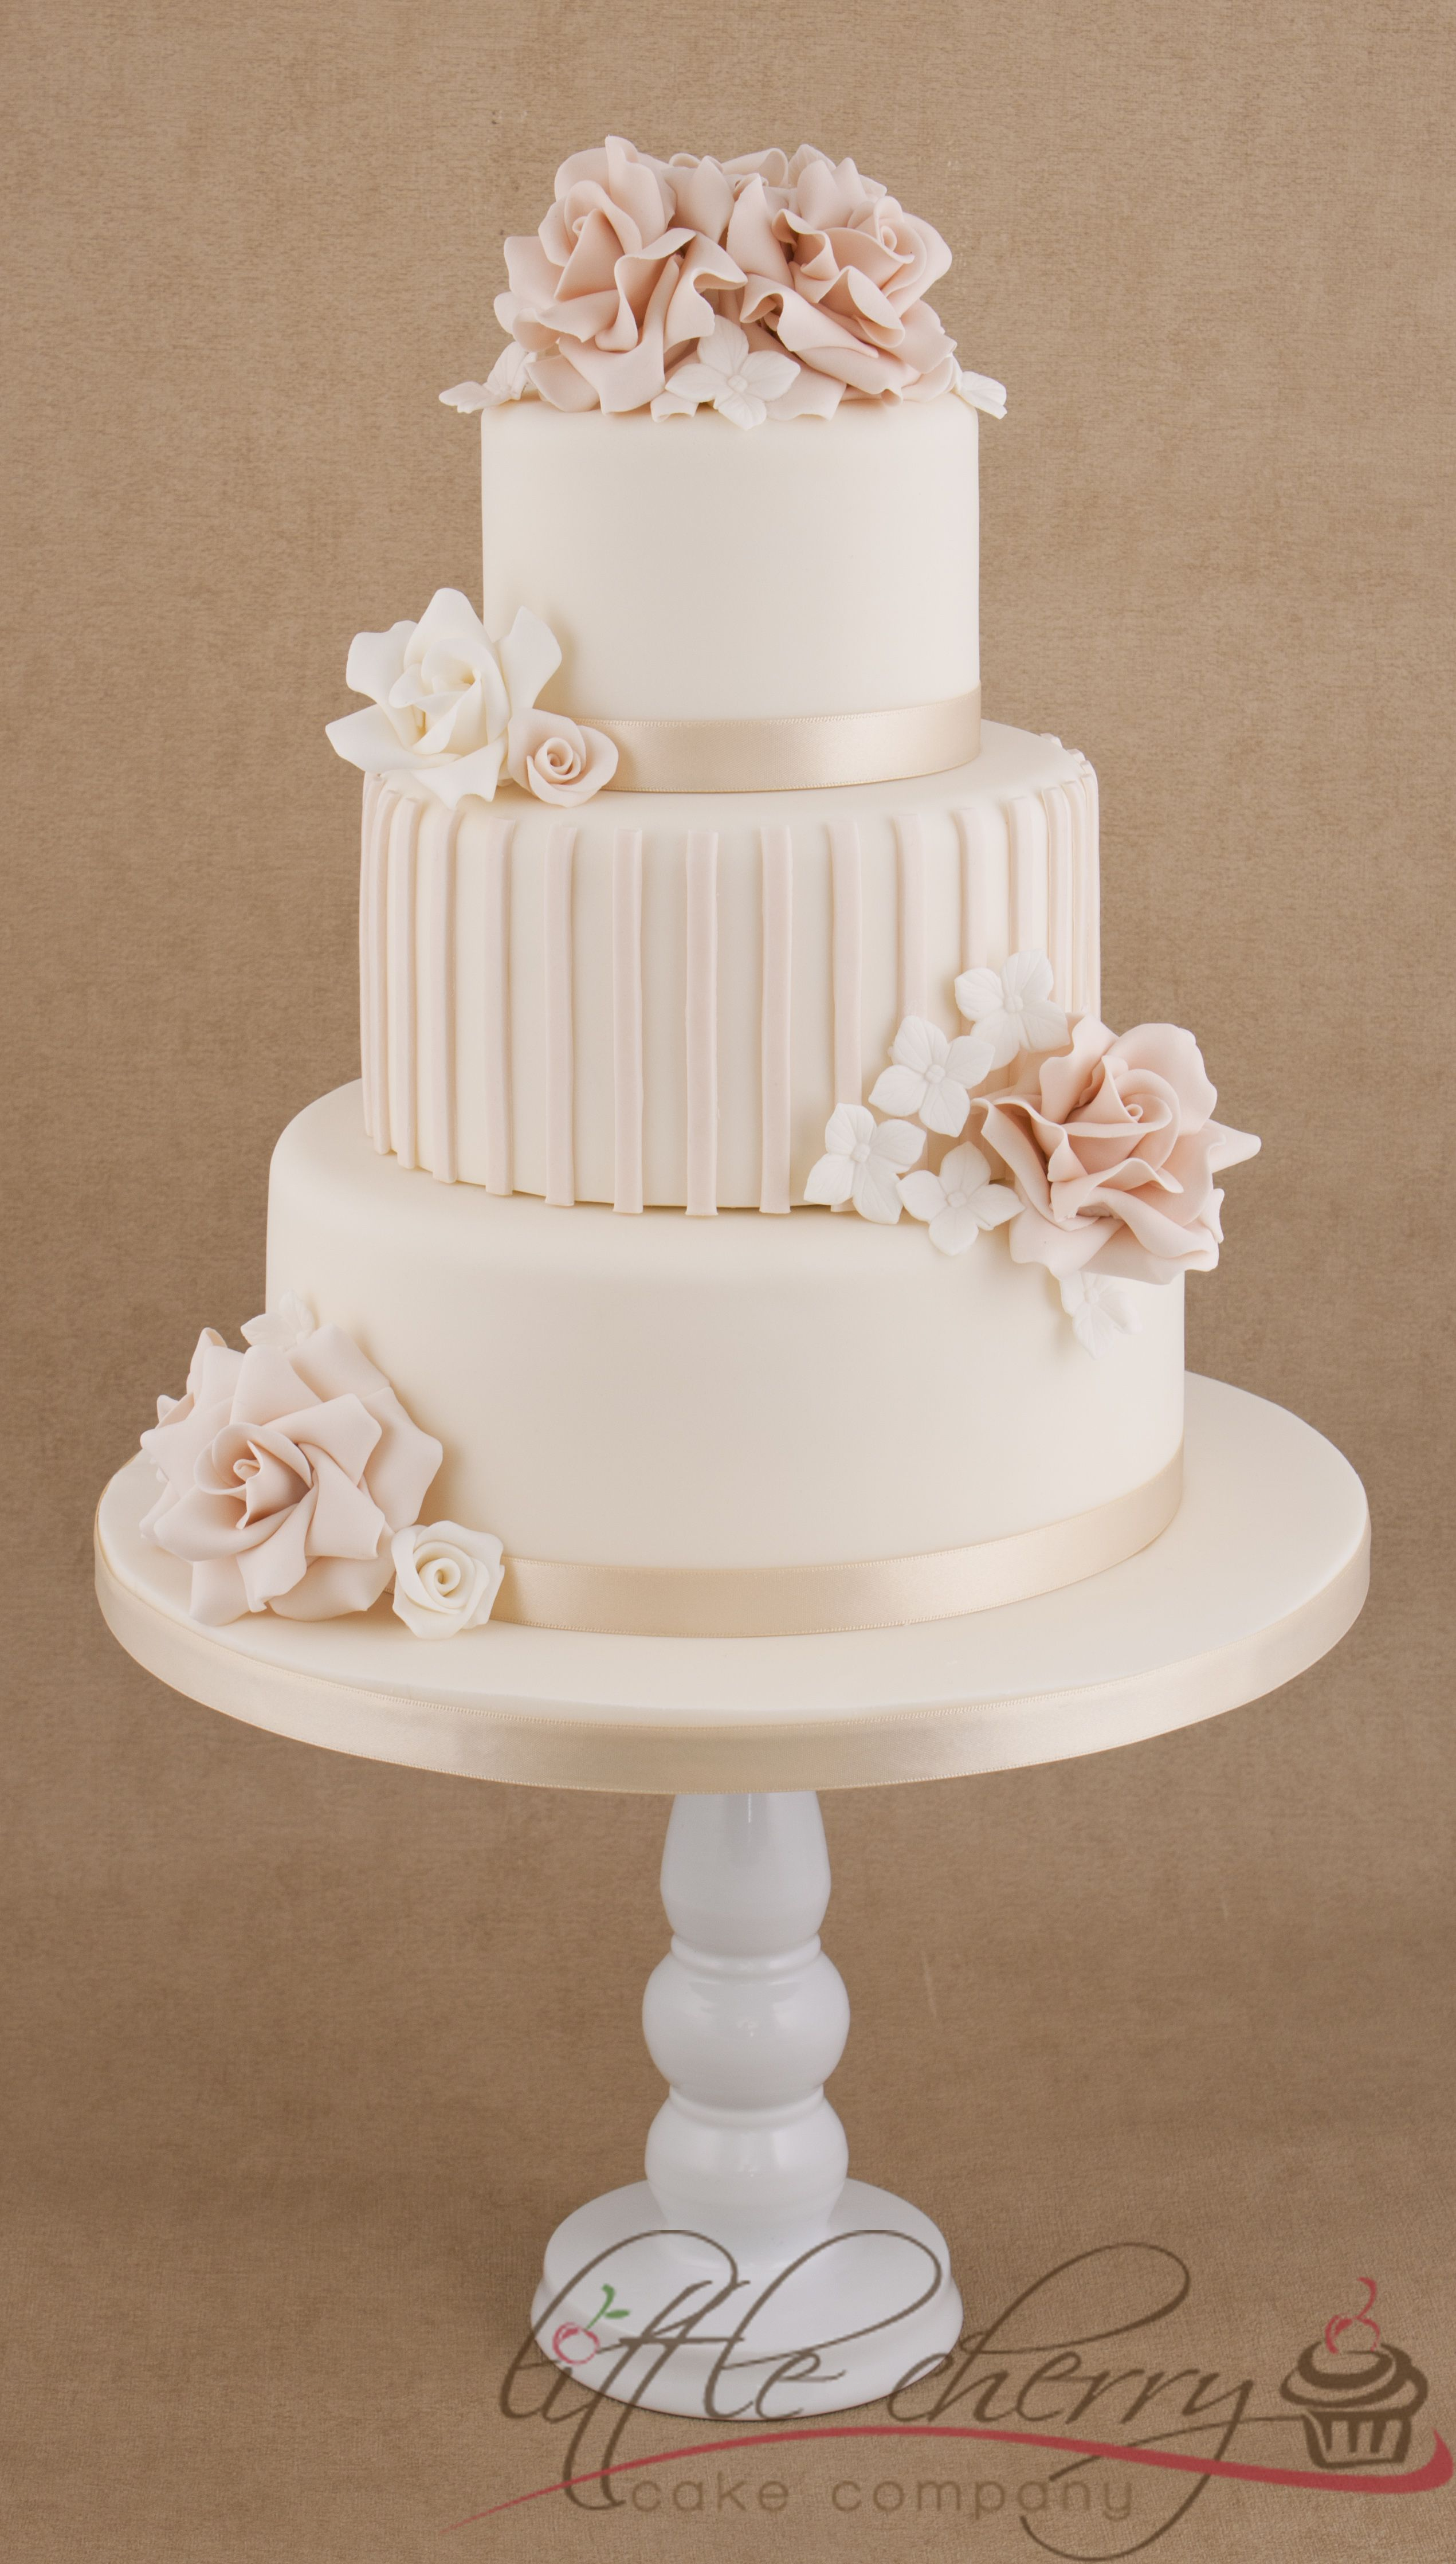 roses and stripes tier wedding cake bride give me reign wallpaper diy of tiered card box iphone hd pics